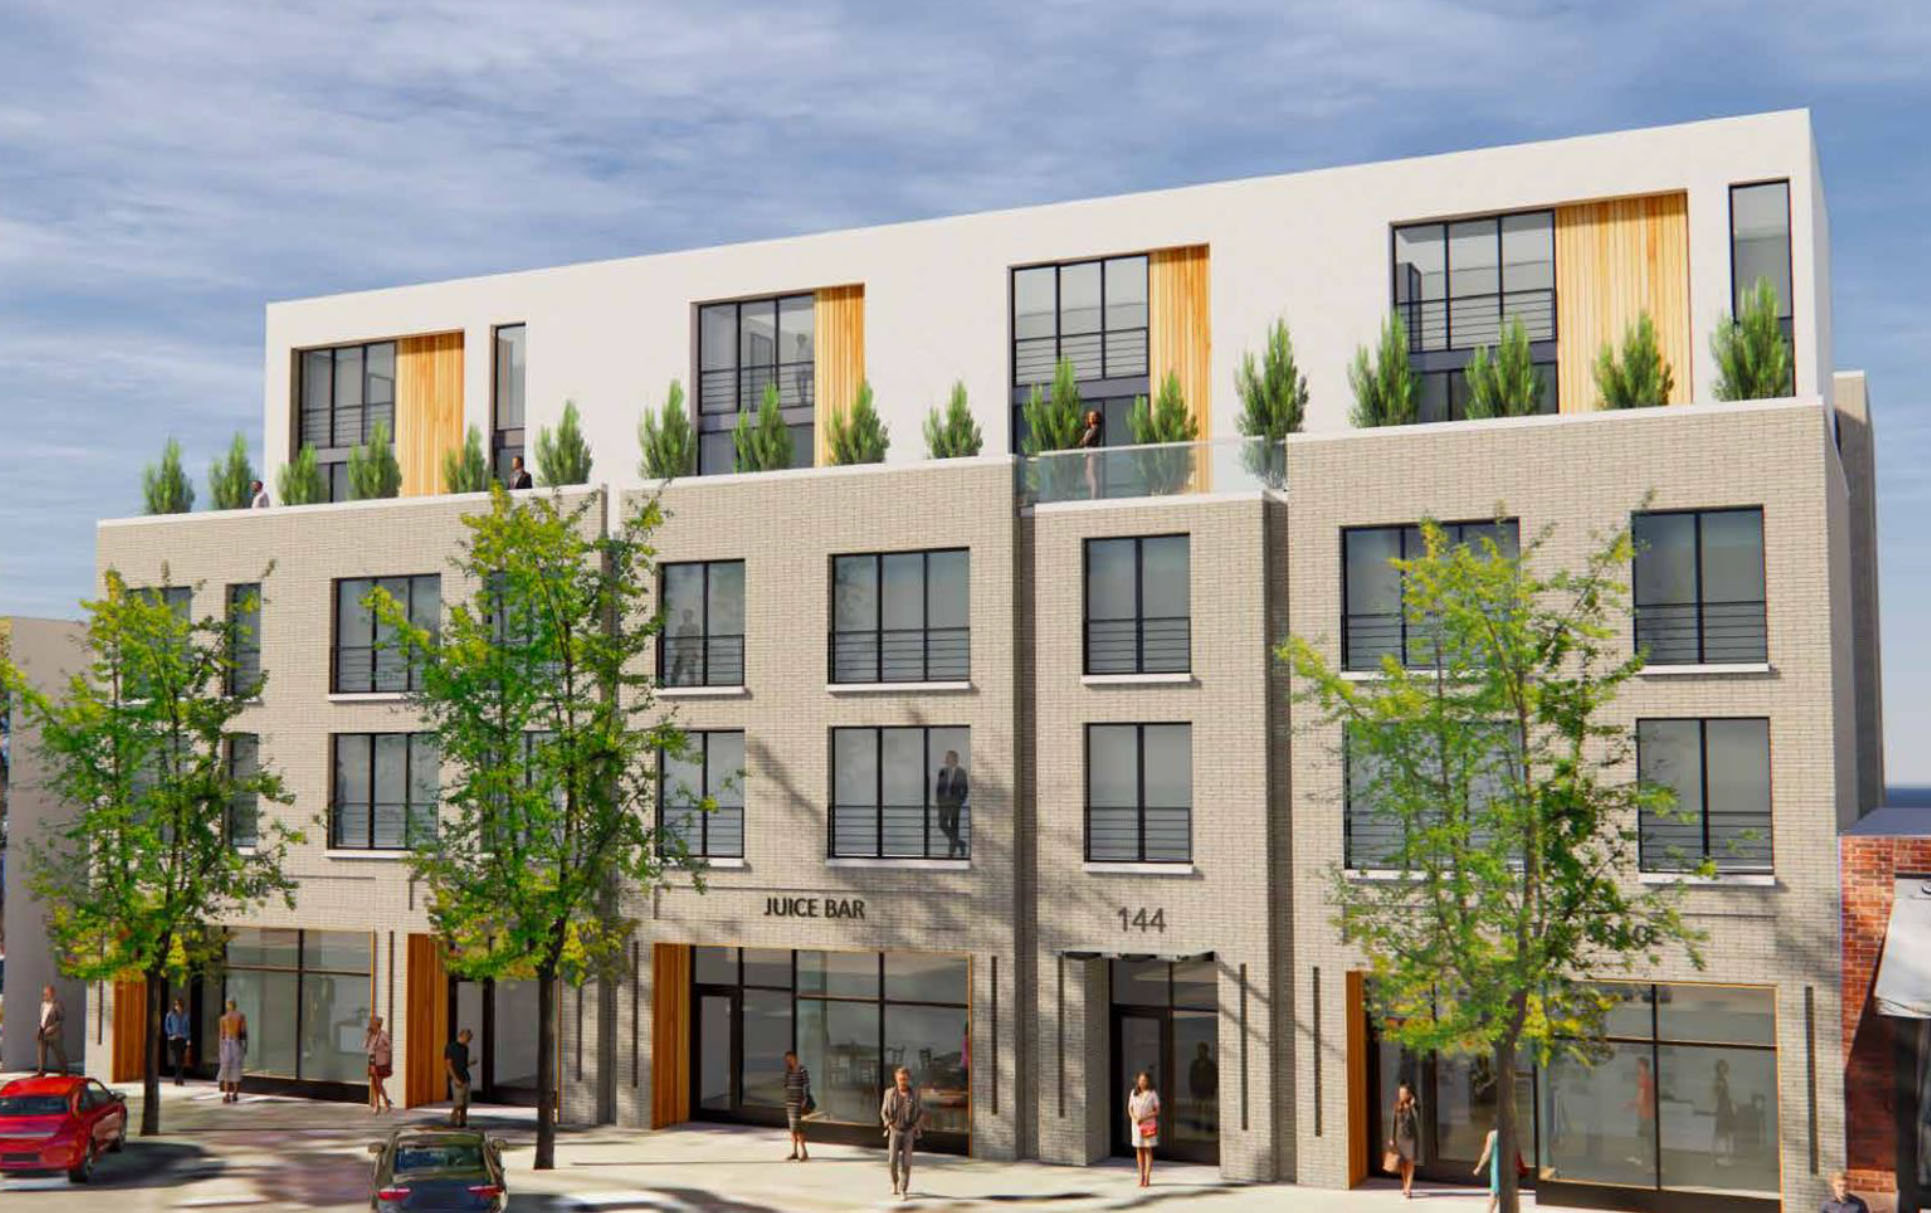 OGDEN RISING: New Historic 25th Street Massive Mixed-Use Development